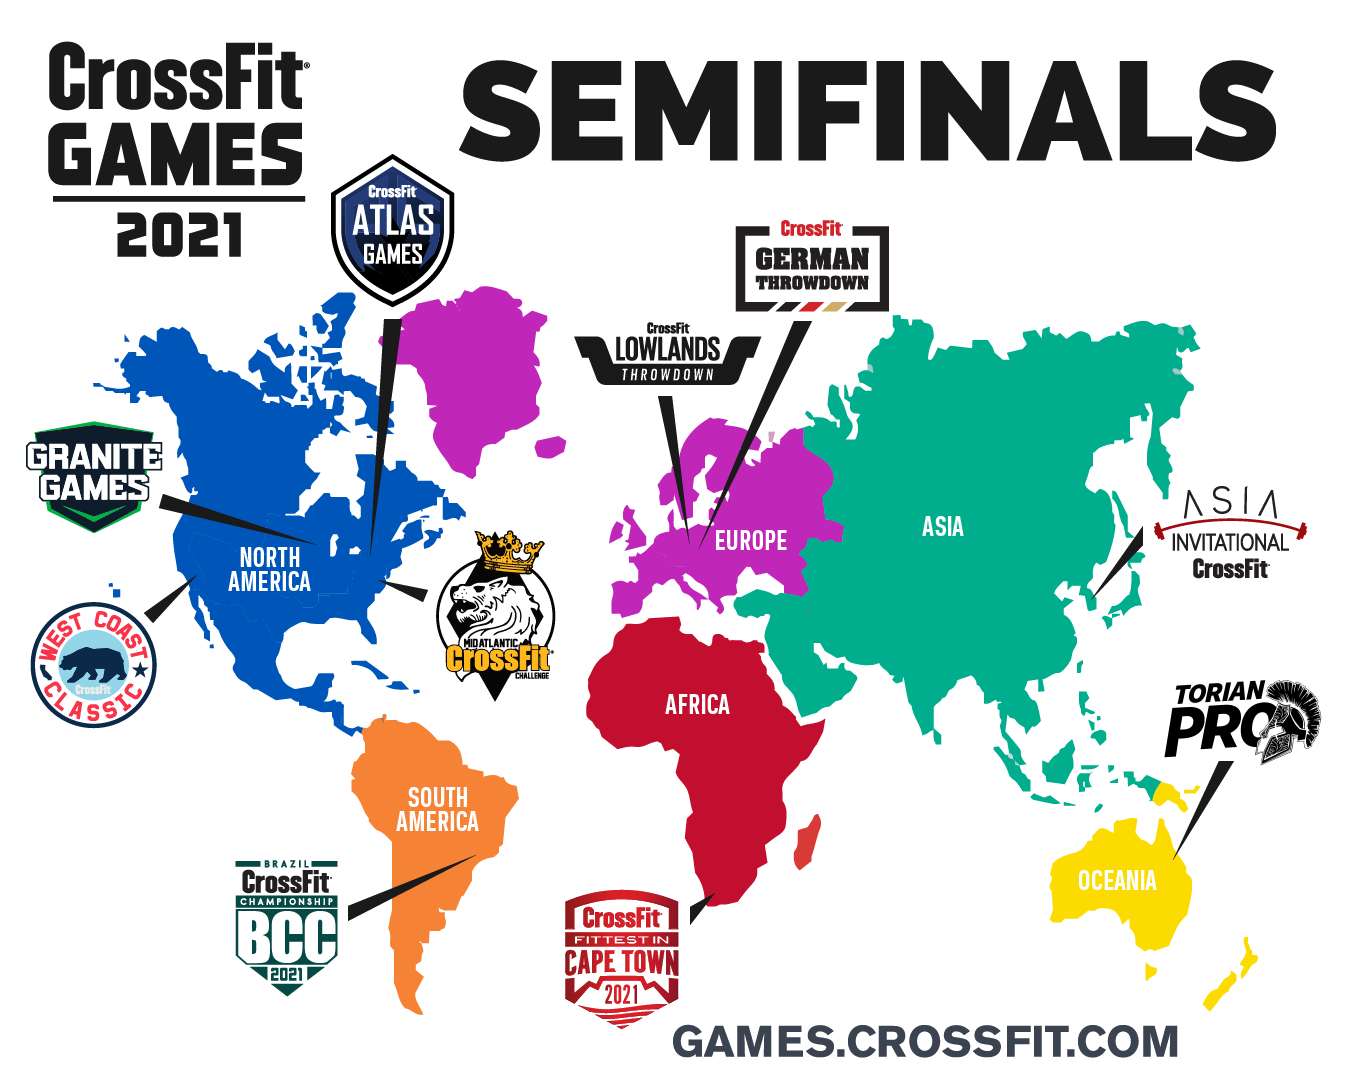 Map of Semifinals